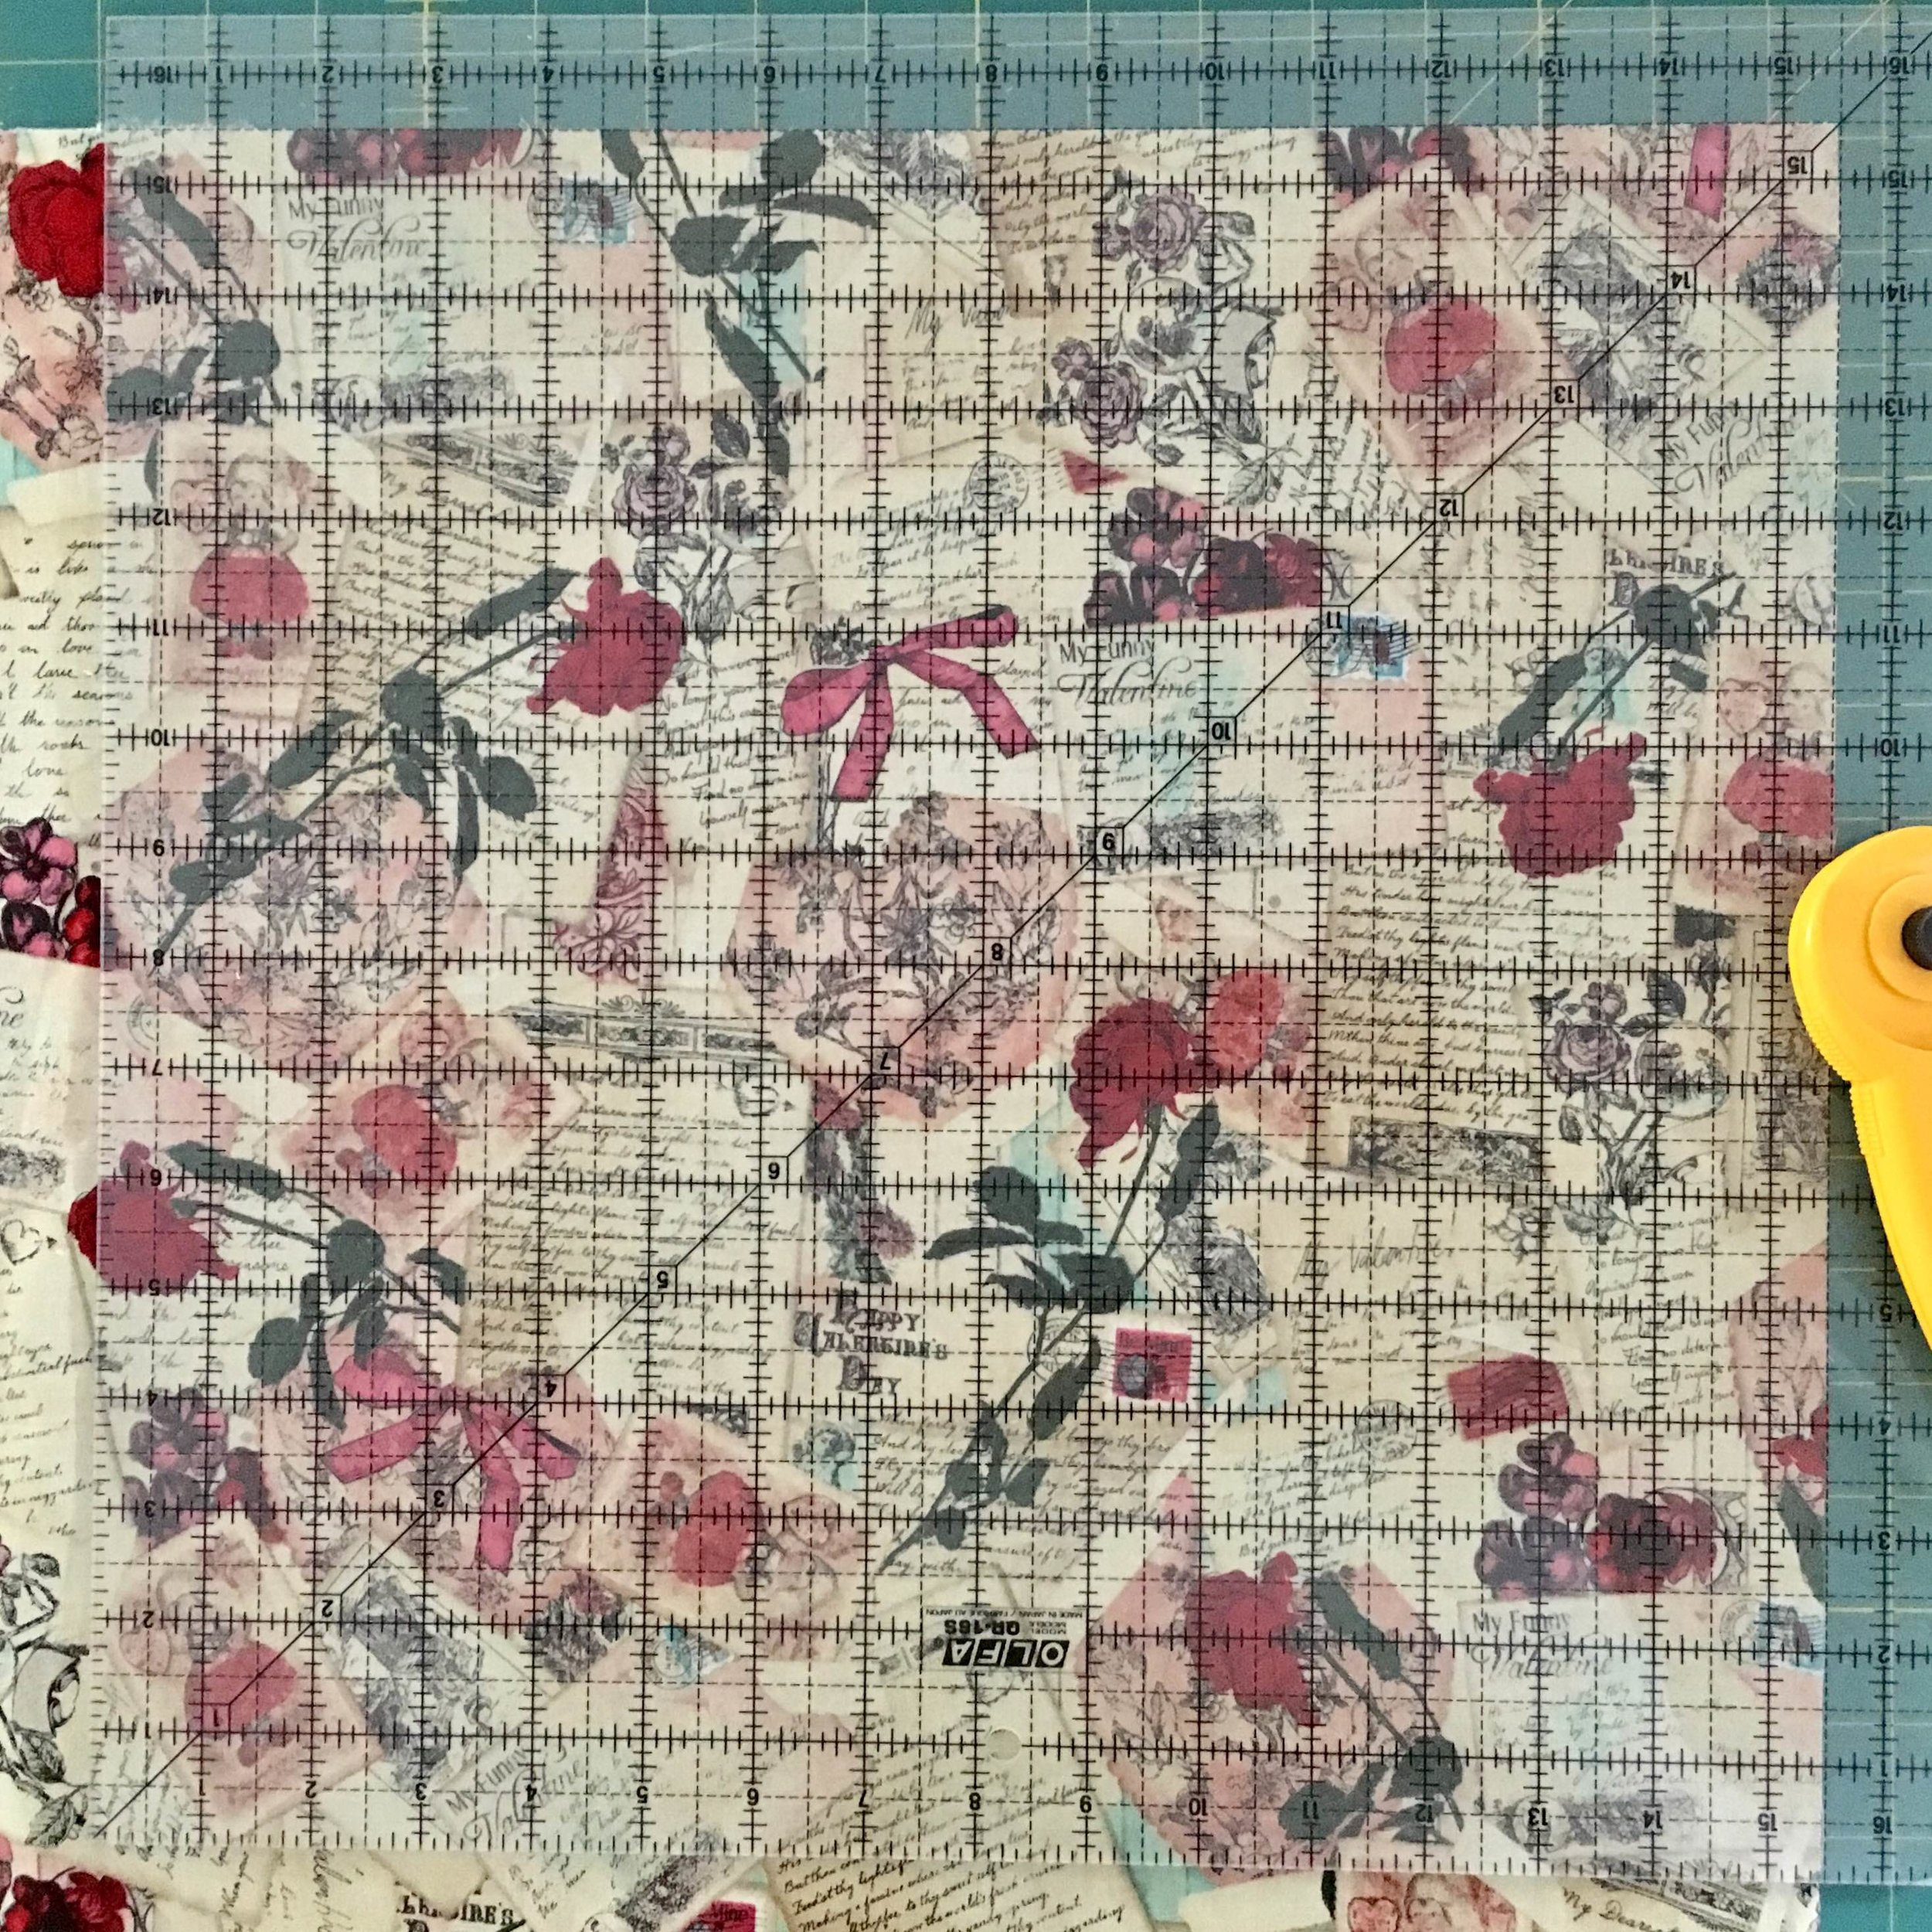 Using a quilting ruler to cut the cover